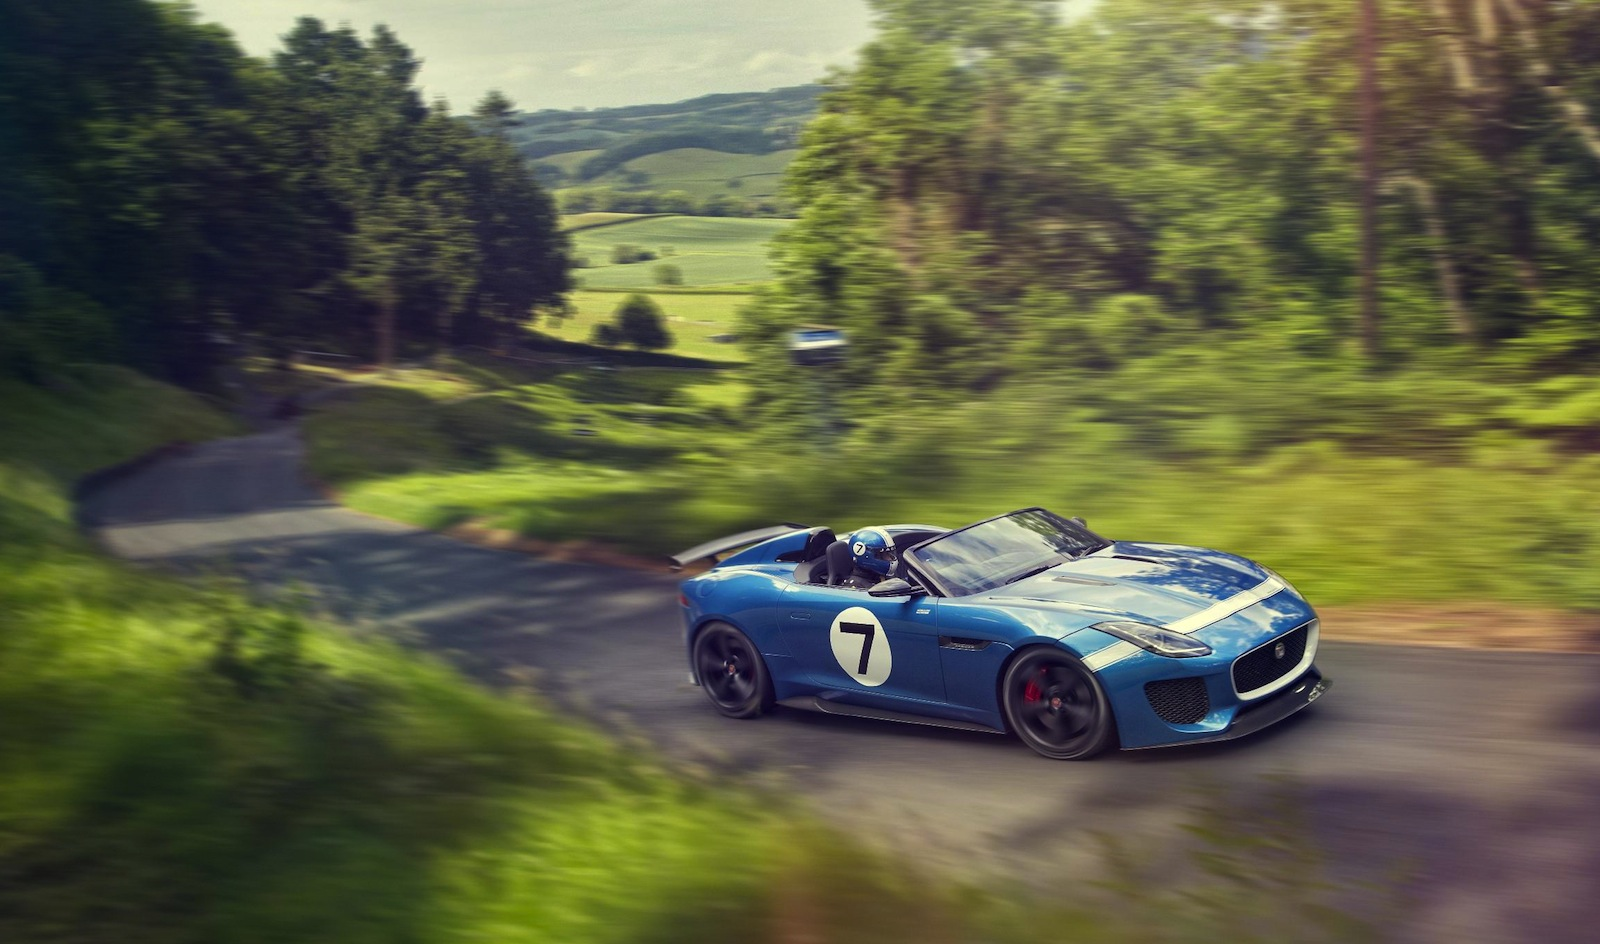 2019 Jaguar Project 7 Concept photo - 4